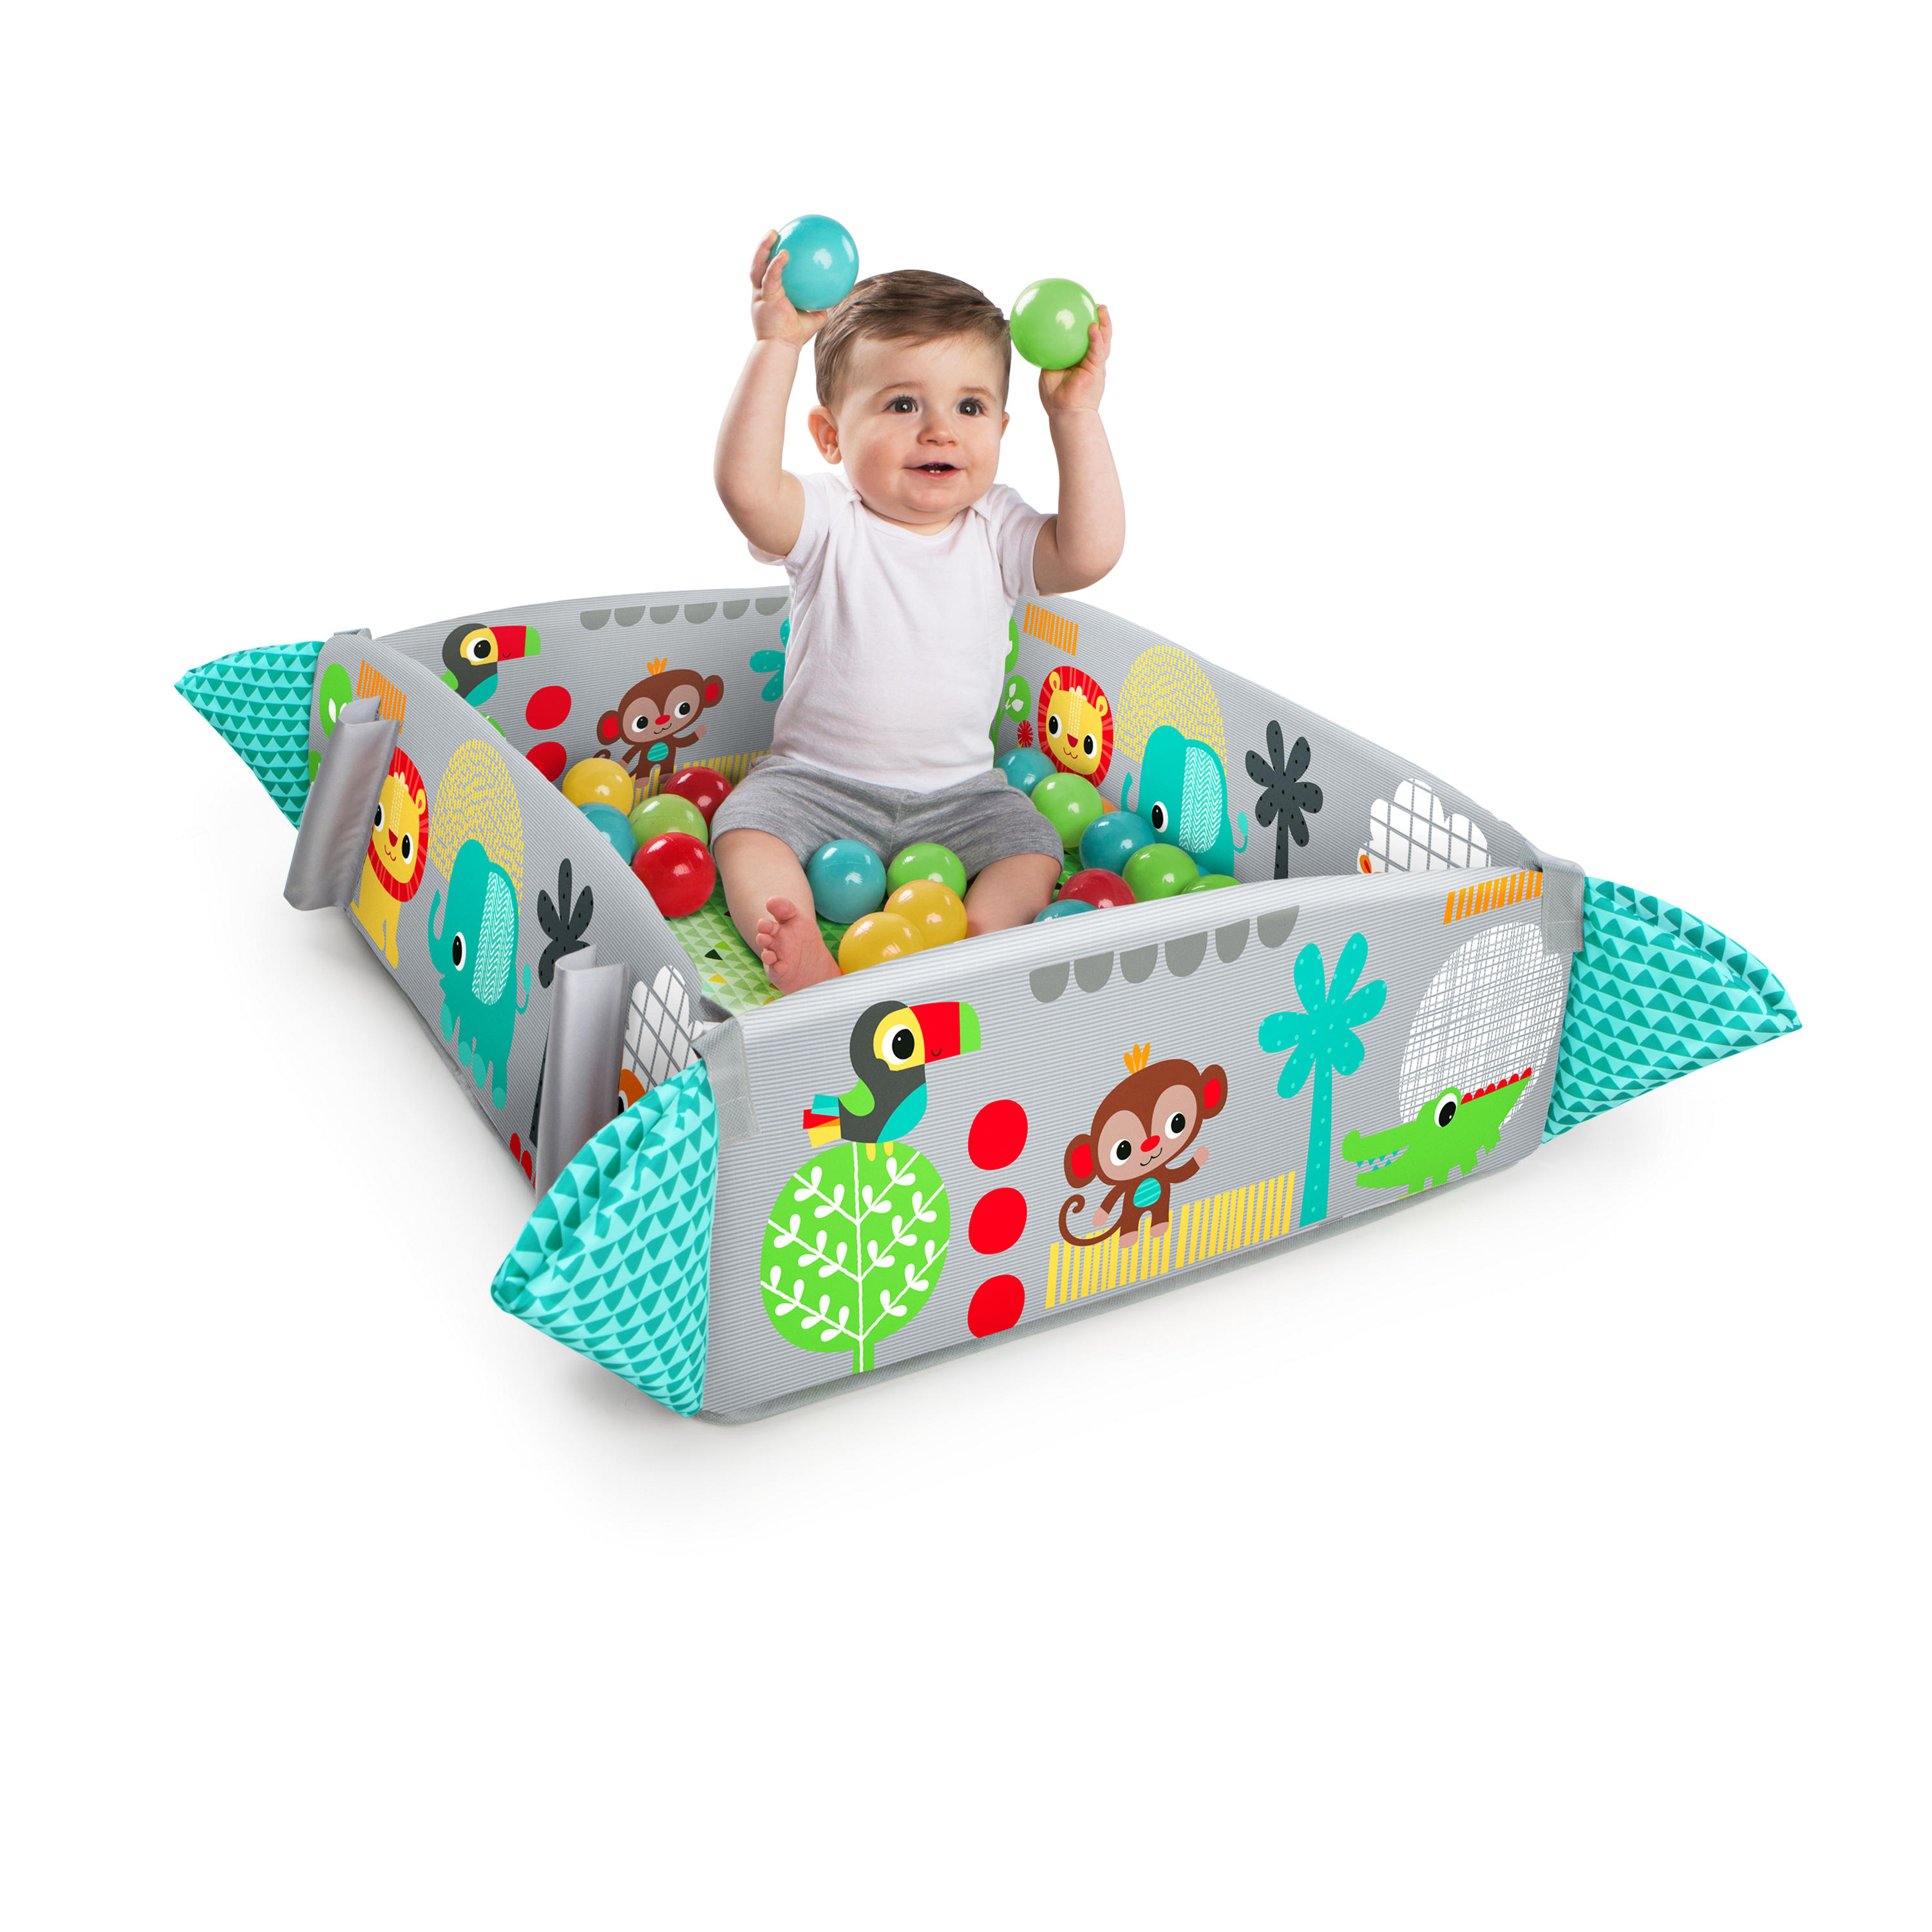 5-in-1 Your Way Ball Play™ Activity Gym